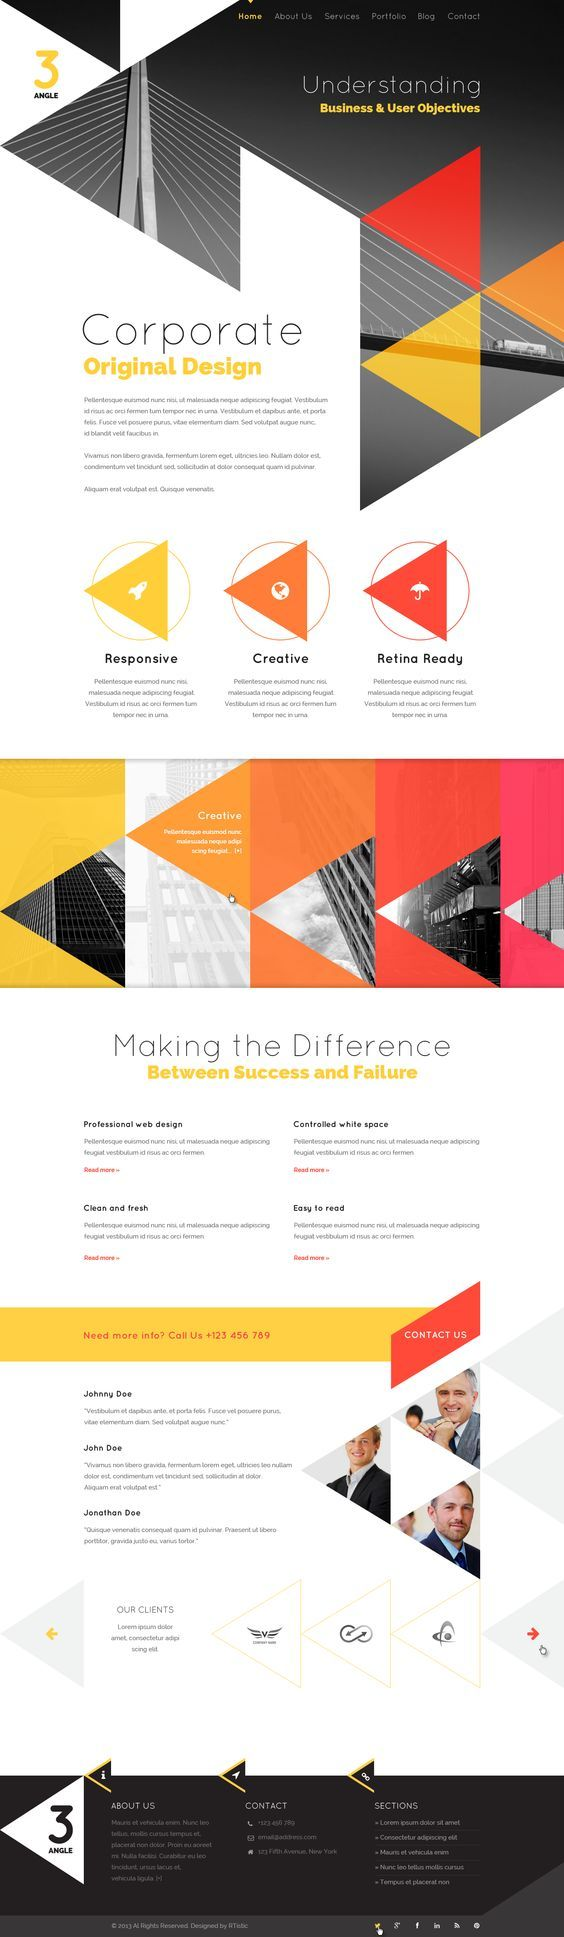 3Angle - Agency Creative Responsive Web Design Template, find more on the Responsive Design Knowledge Hub: http://www.ugurus.com/responsive-design-templates-and-themes: